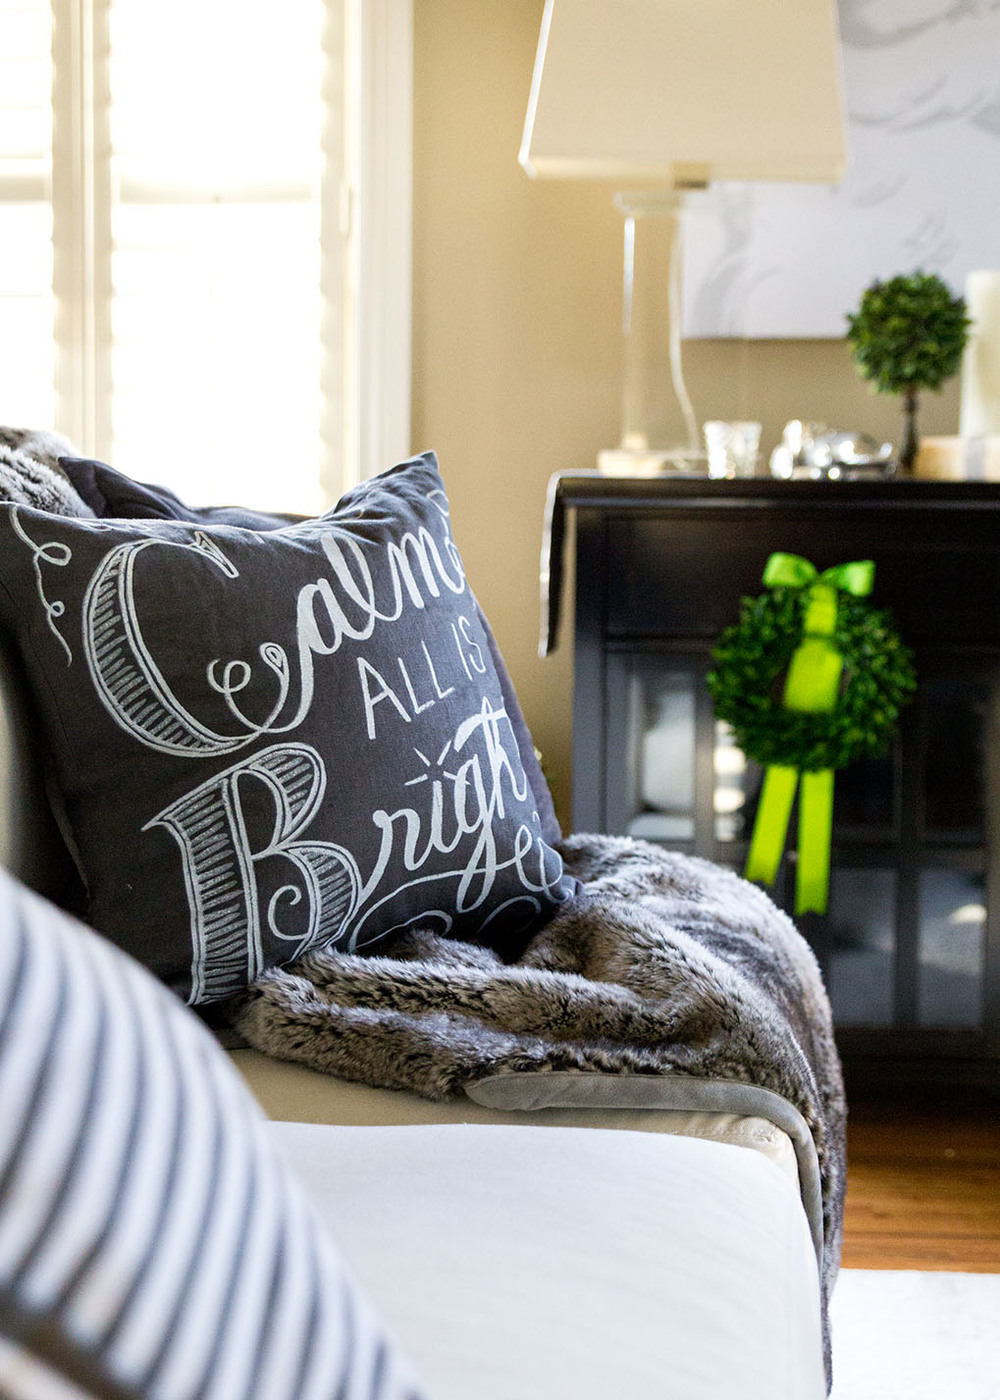 Calm & Bright Pillow - Pottery Barn